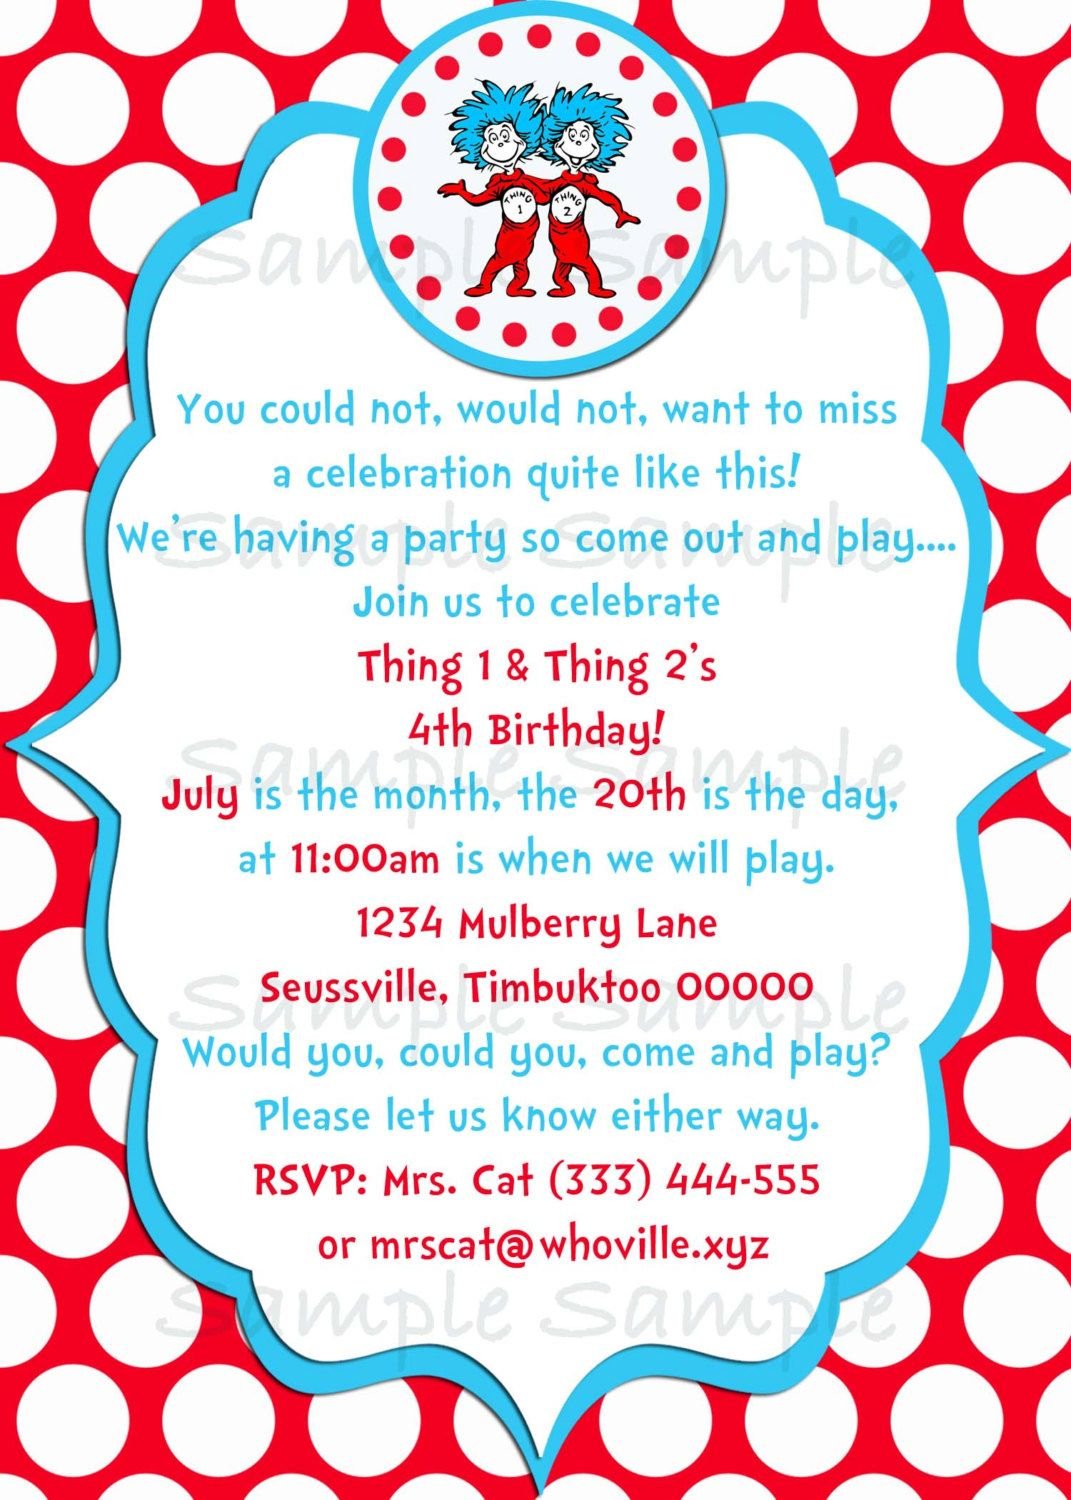 Seuss Thing 1 2 Birthday Party Invitation Printable 500 Via Etsy